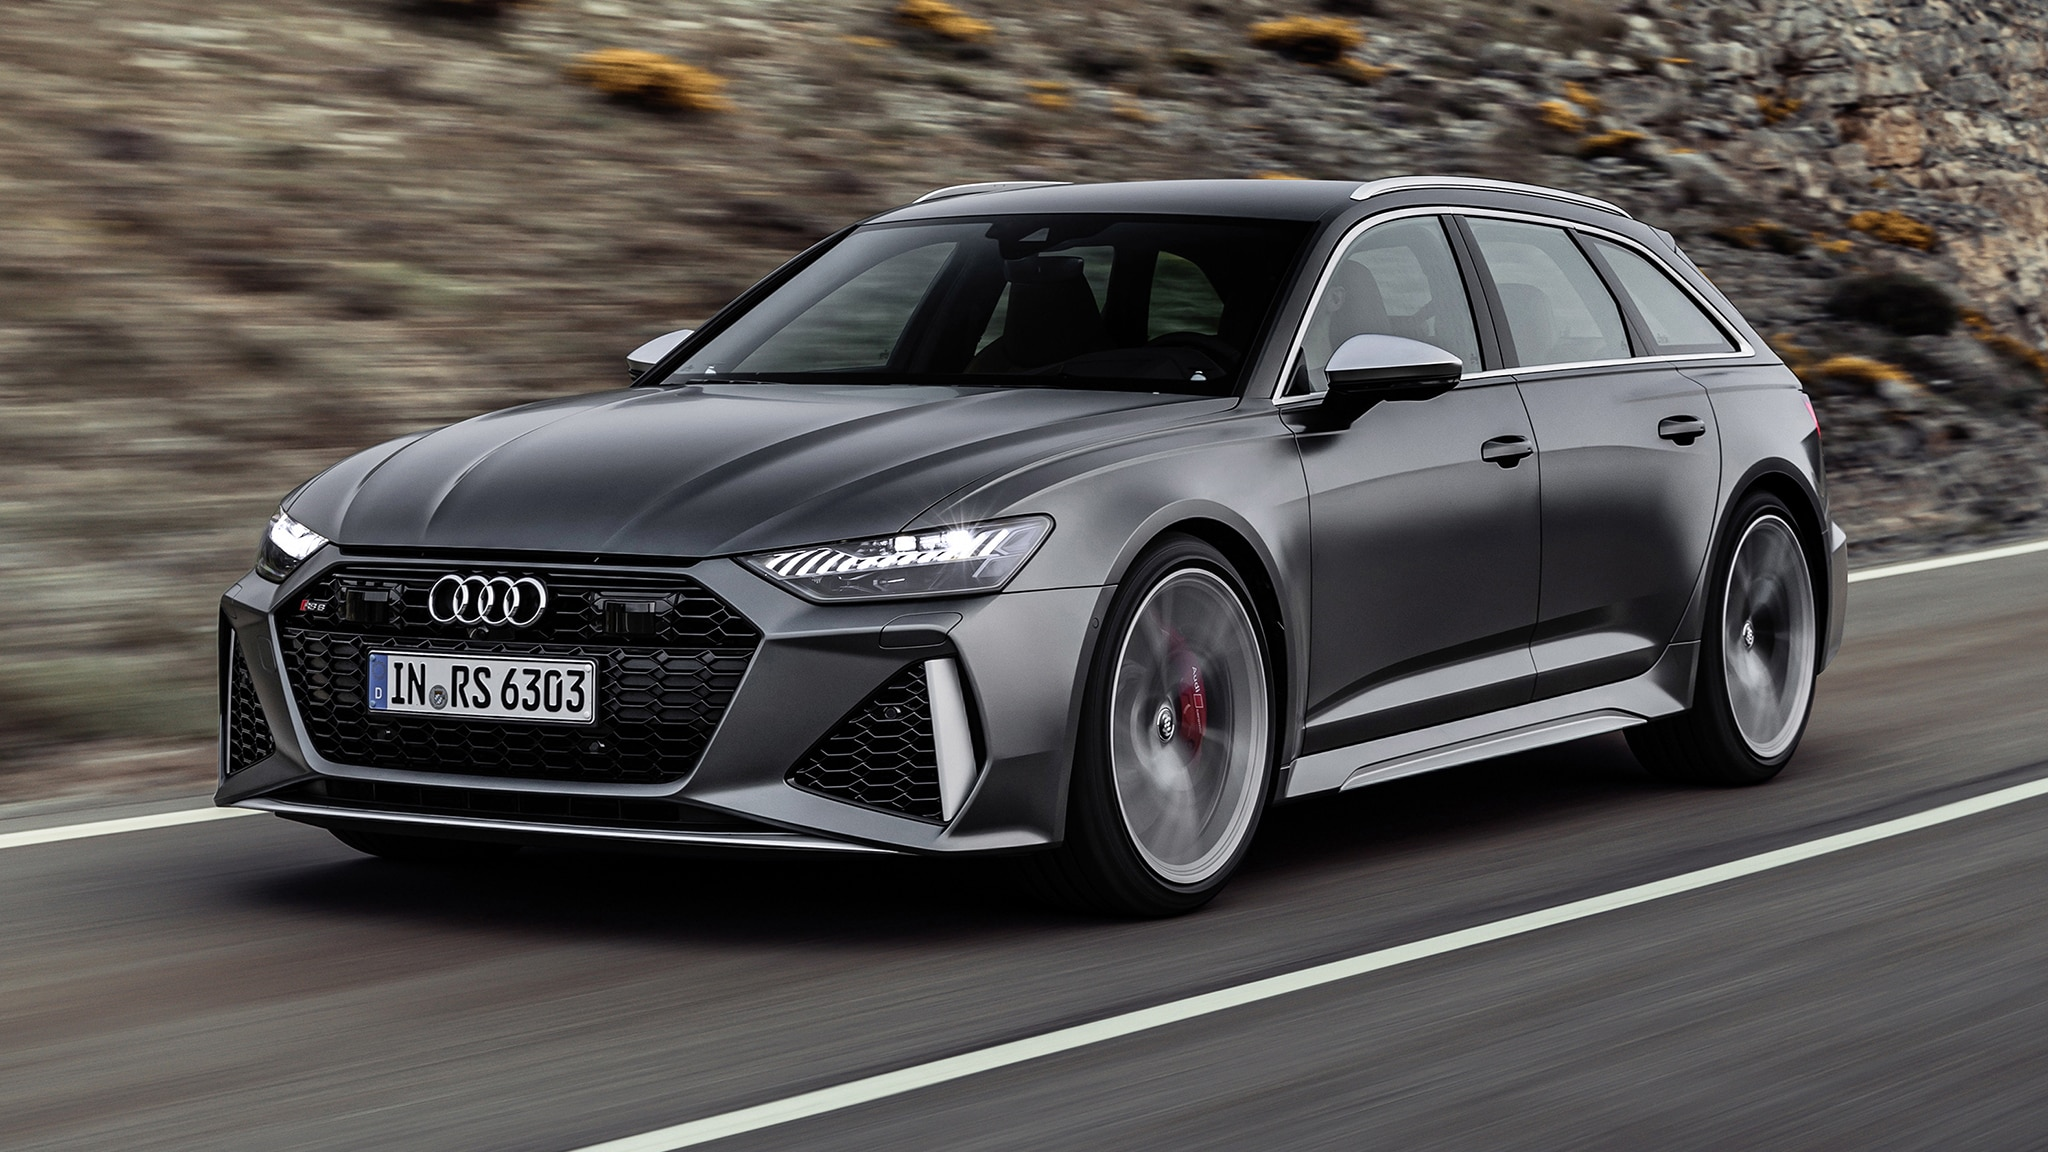 2020 Audi Rs6 Avant Full Info It S Finally Coming To